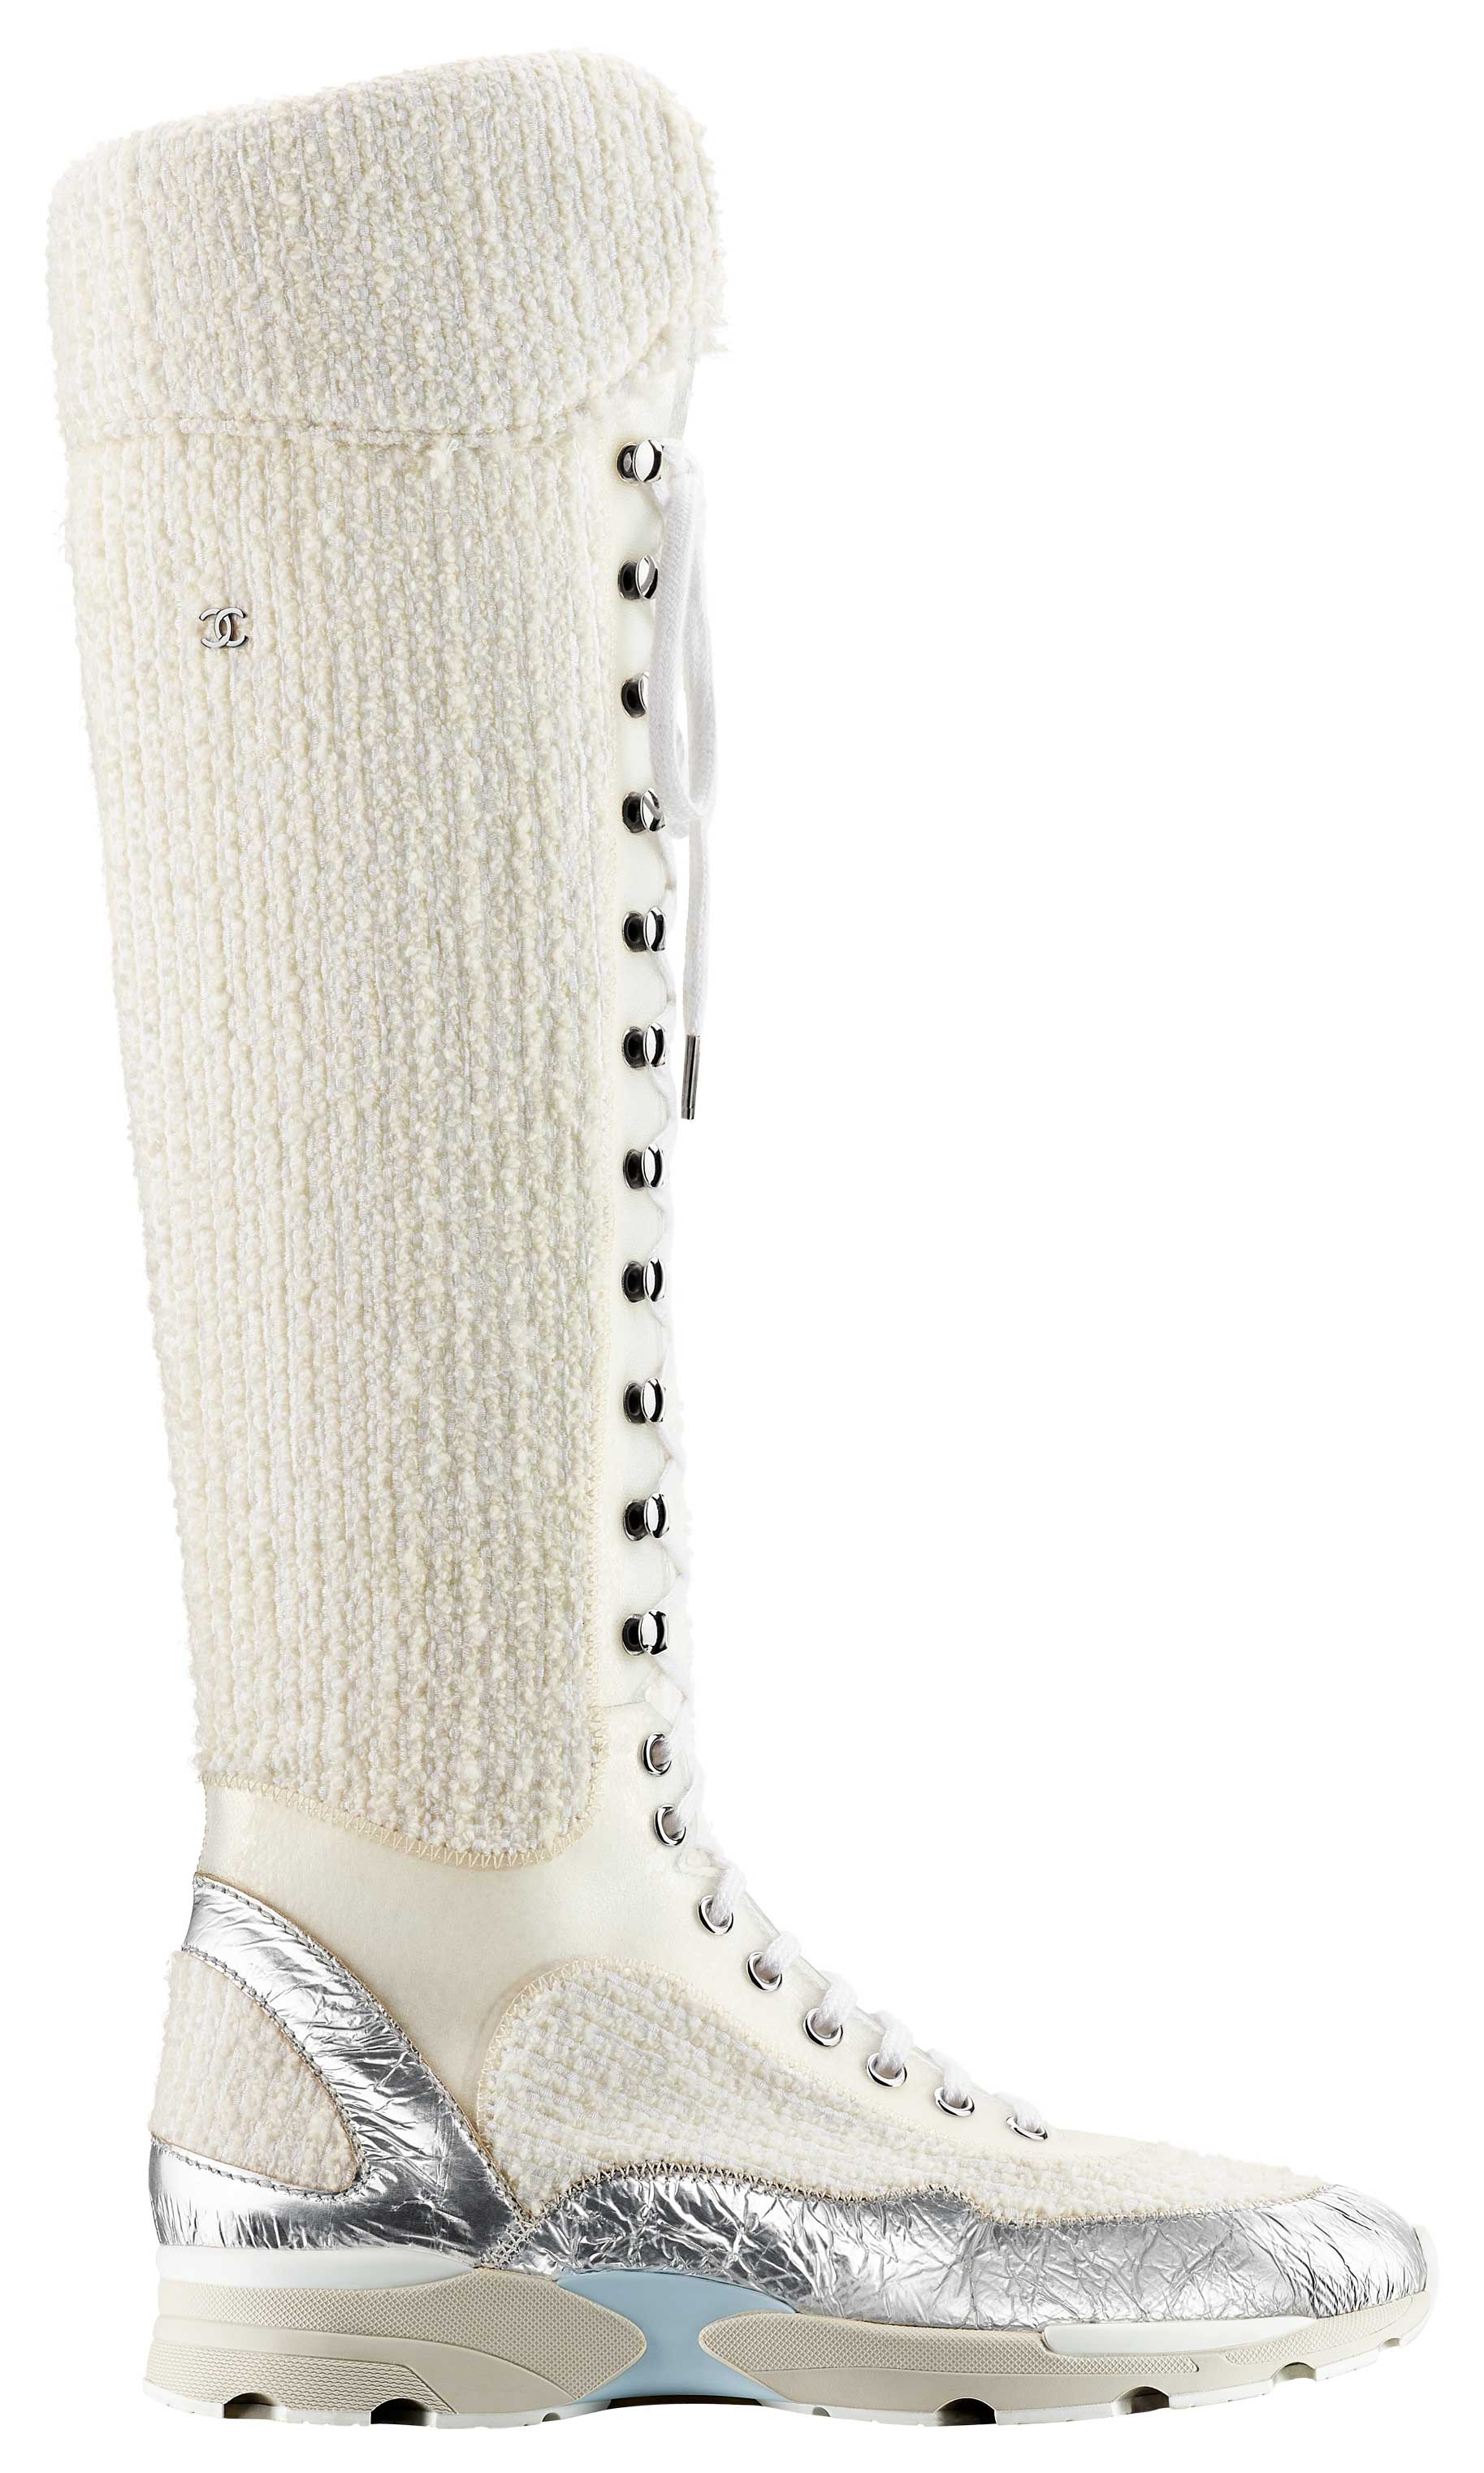 White-tweed,-leather-and-rubber-sneaker_Basket-blanche-en-tweed,-cuir-et-caoutchouc